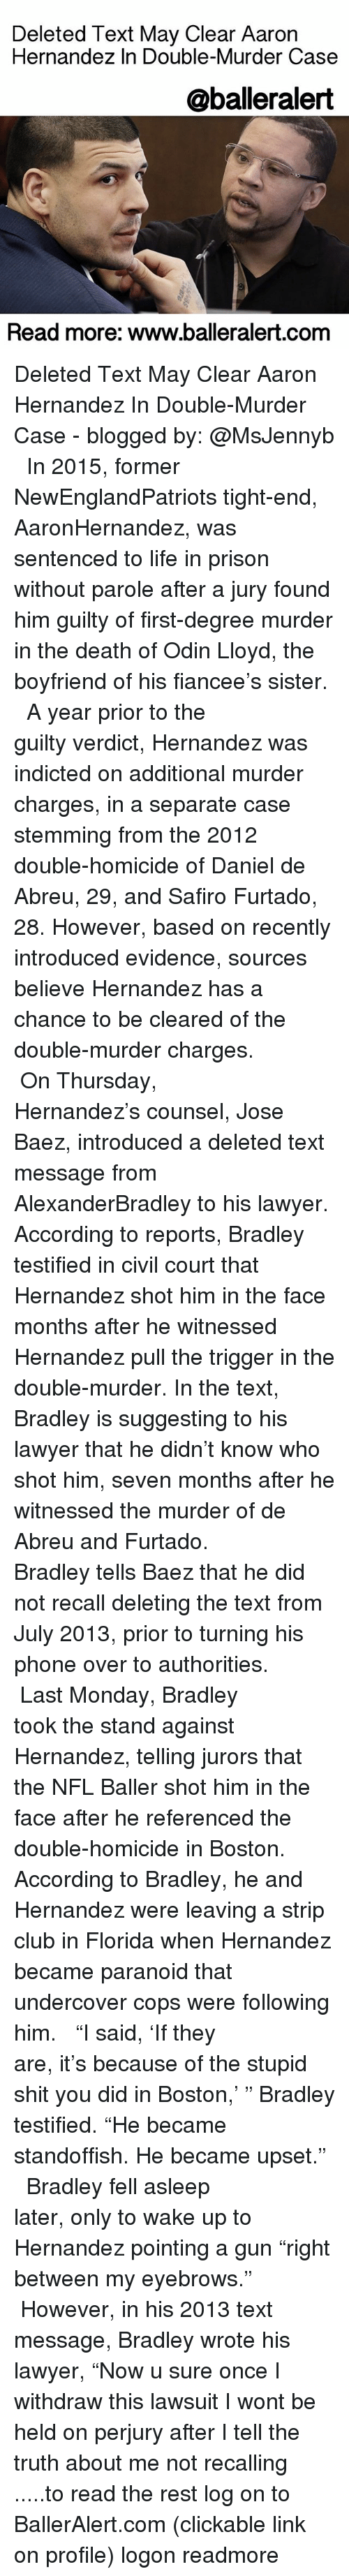 """Aaron Hernandez, Club, and Lawyer: Deleted Text May Clear Aaron  Hernandez In Double-Murder Case  @balleralert  Read more: www.balleralert.com Deleted Text May Clear Aaron Hernandez In Double-Murder Case - blogged by: @MsJennyb ⠀⠀⠀⠀⠀⠀⠀⠀⠀ ⠀⠀⠀⠀⠀⠀⠀⠀⠀ In 2015, former NewEnglandPatriots tight-end, AaronHernandez, was sentenced to life in prison without parole after a jury found him guilty of first-degree murder in the death of Odin Lloyd, the boyfriend of his fiancee's sister. ⠀⠀⠀⠀⠀⠀⠀⠀⠀ ⠀⠀⠀⠀⠀⠀⠀⠀⠀ A year prior to the guilty verdict, Hernandez was indicted on additional murder charges, in a separate case stemming from the 2012 double-homicide of Daniel de Abreu, 29, and Safiro Furtado, 28. However, based on recently introduced evidence, sources believe Hernandez has a chance to be cleared of the double-murder charges. ⠀⠀⠀⠀⠀⠀⠀⠀⠀ ⠀⠀⠀⠀⠀⠀⠀⠀⠀ On Thursday, Hernandez's counsel, Jose Baez, introduced a deleted text message from AlexanderBradley to his lawyer. According to reports, Bradley testified in civil court that Hernandez shot him in the face months after he witnessed Hernandez pull the trigger in the double-murder. In the text, Bradley is suggesting to his lawyer that he didn't know who shot him, seven months after he witnessed the murder of de Abreu and Furtado. ⠀⠀⠀⠀⠀⠀⠀⠀⠀ ⠀⠀⠀⠀⠀⠀⠀⠀⠀ Bradley tells Baez that he did not recall deleting the text from July 2013, prior to turning his phone over to authorities. ⠀⠀⠀⠀⠀⠀⠀⠀⠀ ⠀⠀⠀⠀⠀⠀⠀⠀⠀ Last Monday, Bradley took the stand against Hernandez, telling jurors that the NFL Baller shot him in the face after he referenced the double-homicide in Boston. According to Bradley, he and Hernandez were leaving a strip club in Florida when Hernandez became paranoid that undercover cops were following him. ⠀⠀⠀⠀⠀⠀⠀⠀⠀ ⠀⠀⠀⠀⠀⠀⠀⠀⠀ """"I said, 'If they are, it's because of the stupid shit you did in Boston,' """" Bradley testified. """"He became standoffish. He became upset."""" ⠀⠀⠀⠀⠀⠀⠀⠀⠀ ⠀⠀⠀⠀⠀⠀⠀⠀⠀ Bradley fell asleep later, only to wake up to Hernandez pointing a gun """""""